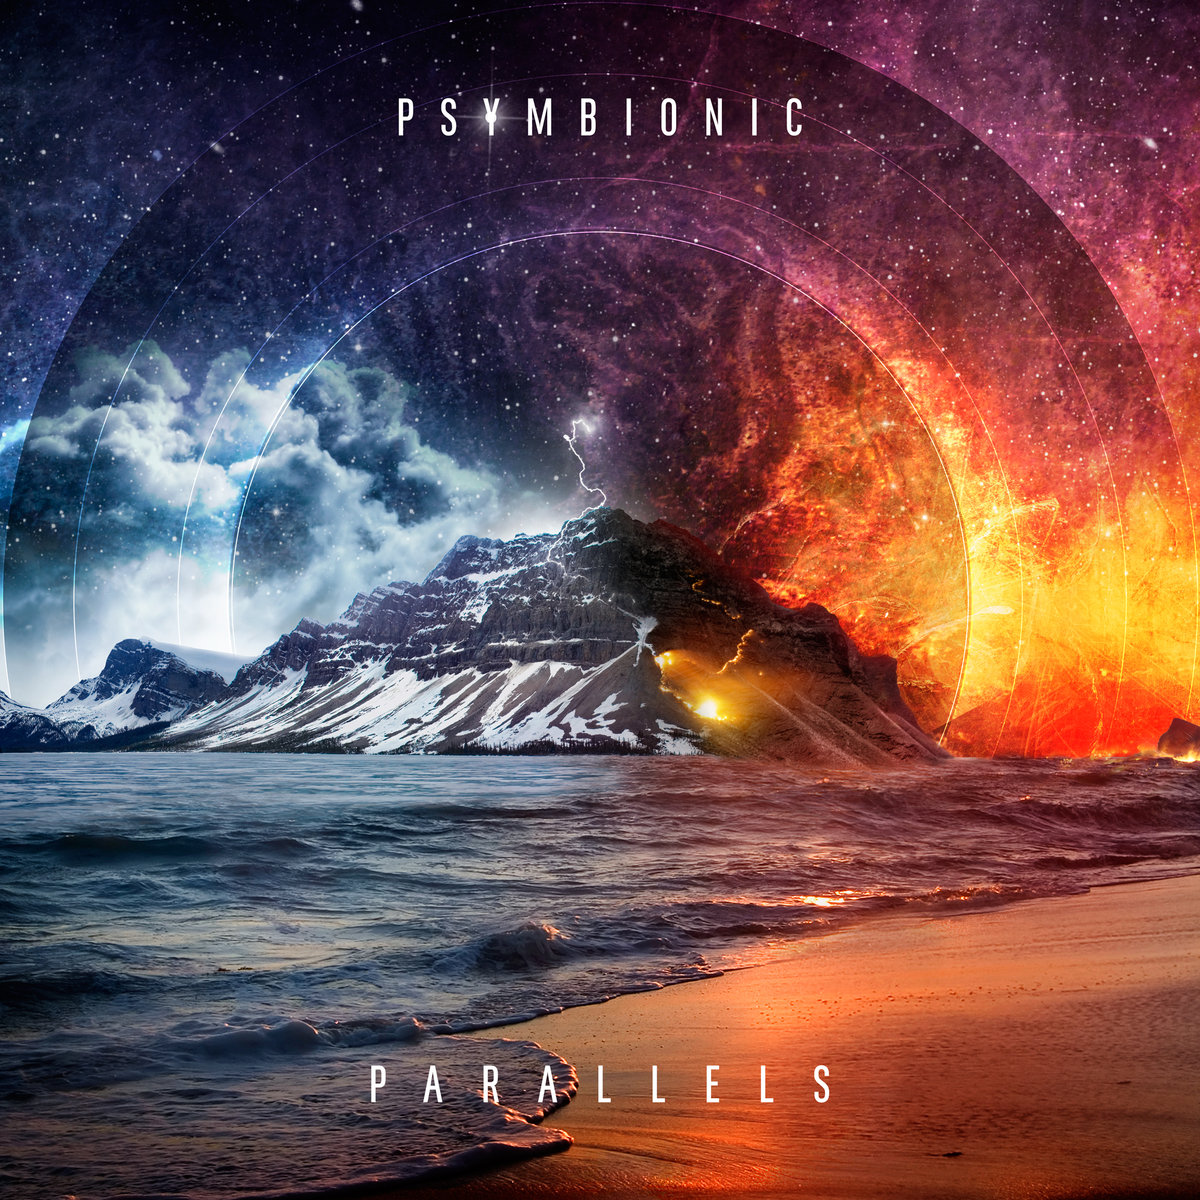 Psymbionic - Parallels LP (artwork)